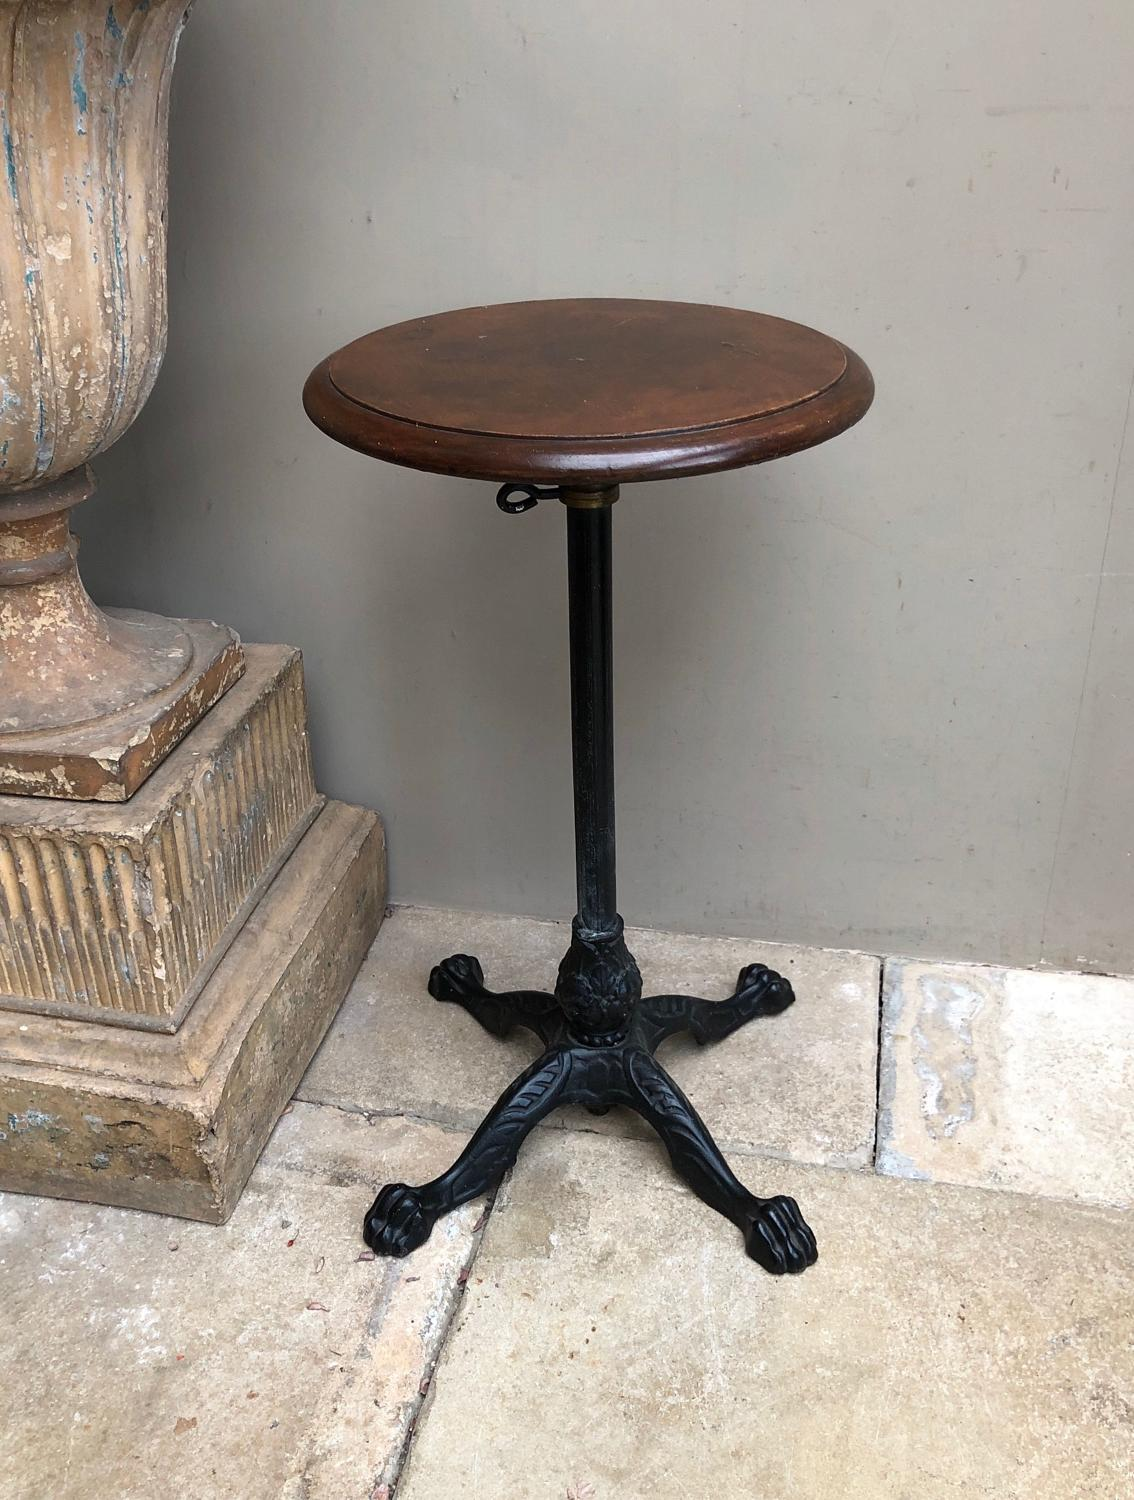 Early 20thC Table with Cast Iron Base & Adjustable Height